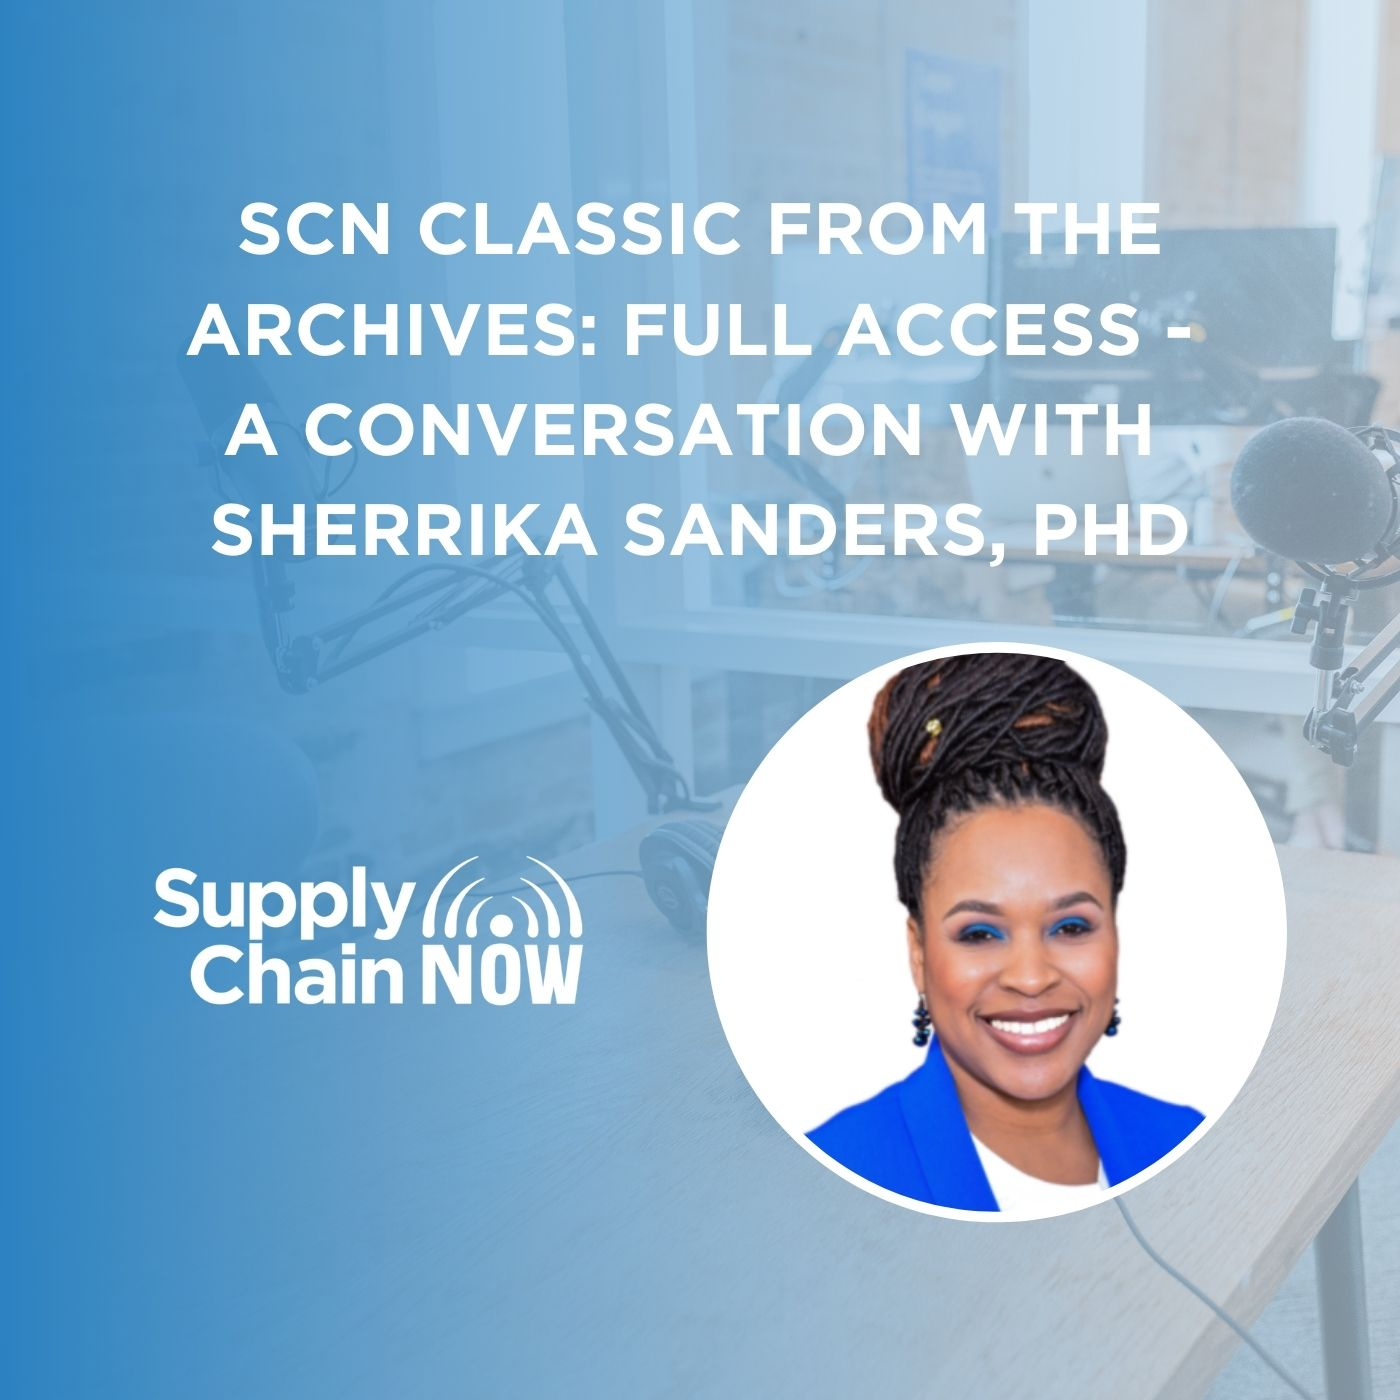 SCN Classic from the Archives: Full Access -  A Conversation with  Sherrika Sanders, PhD